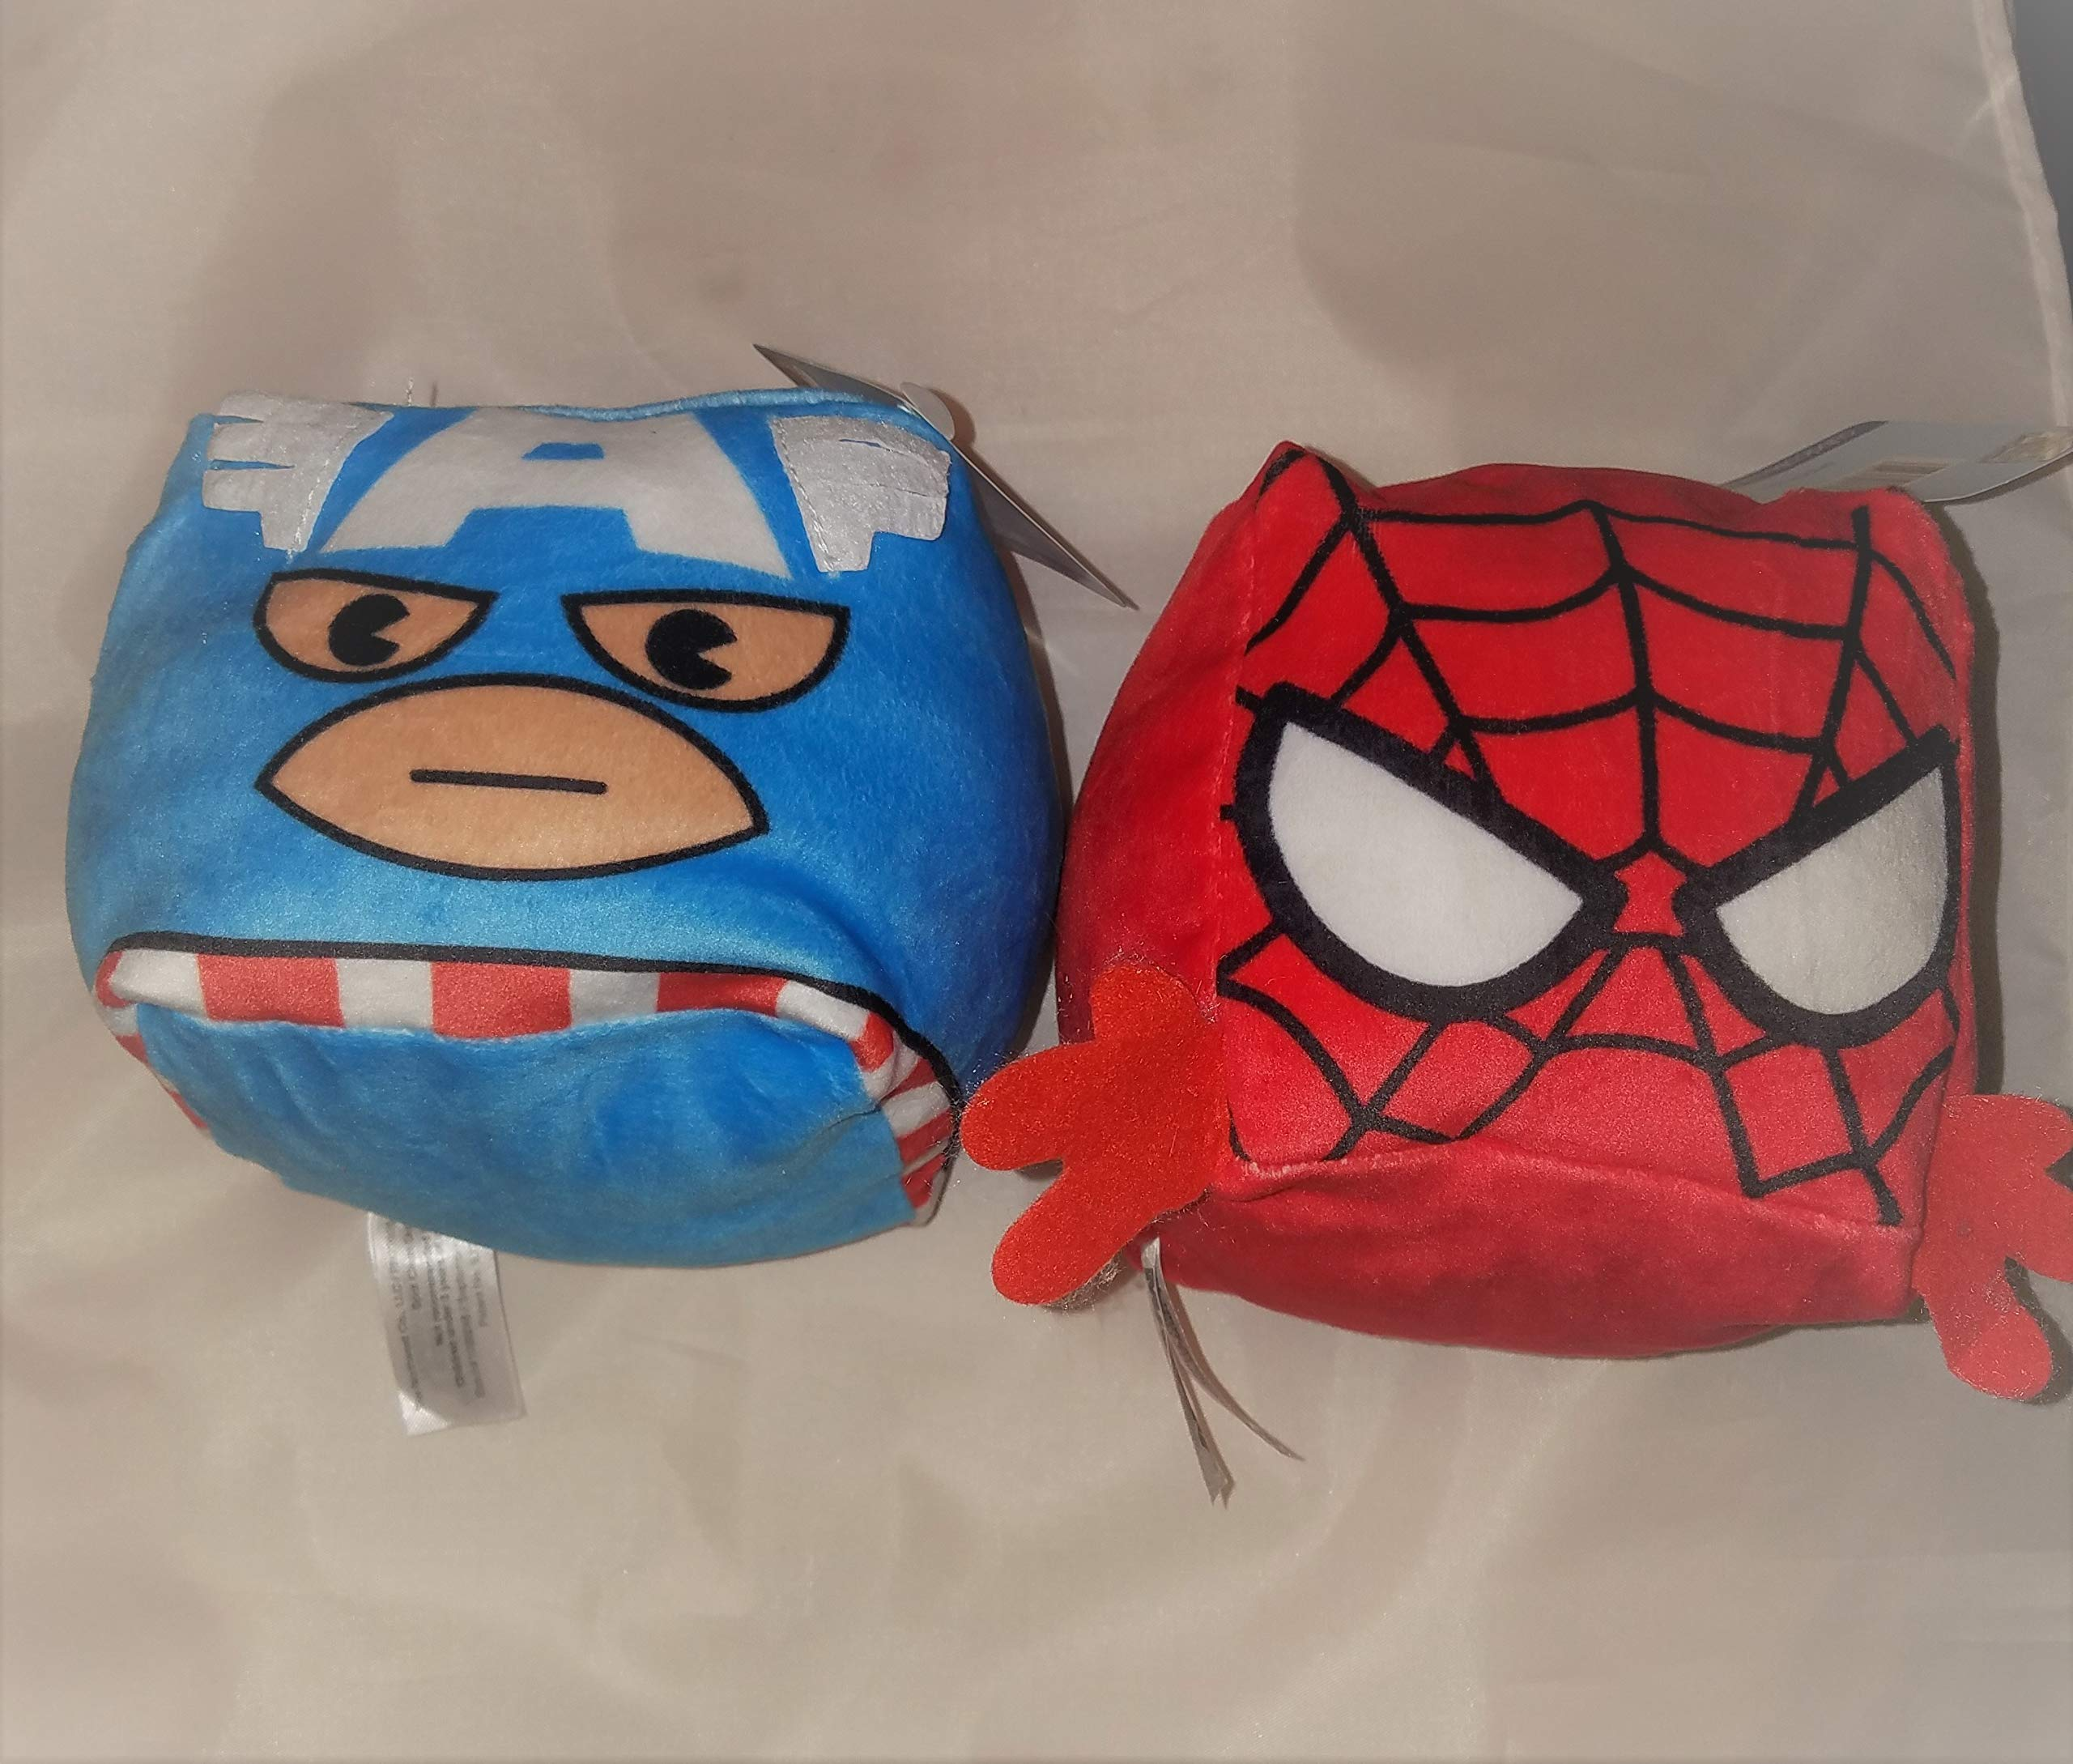 Cubd Collectibles Captain America and Spiderman Plush Mini Travel Pillows 4x4x4 inches by Cubd Collectibles (Image #1)